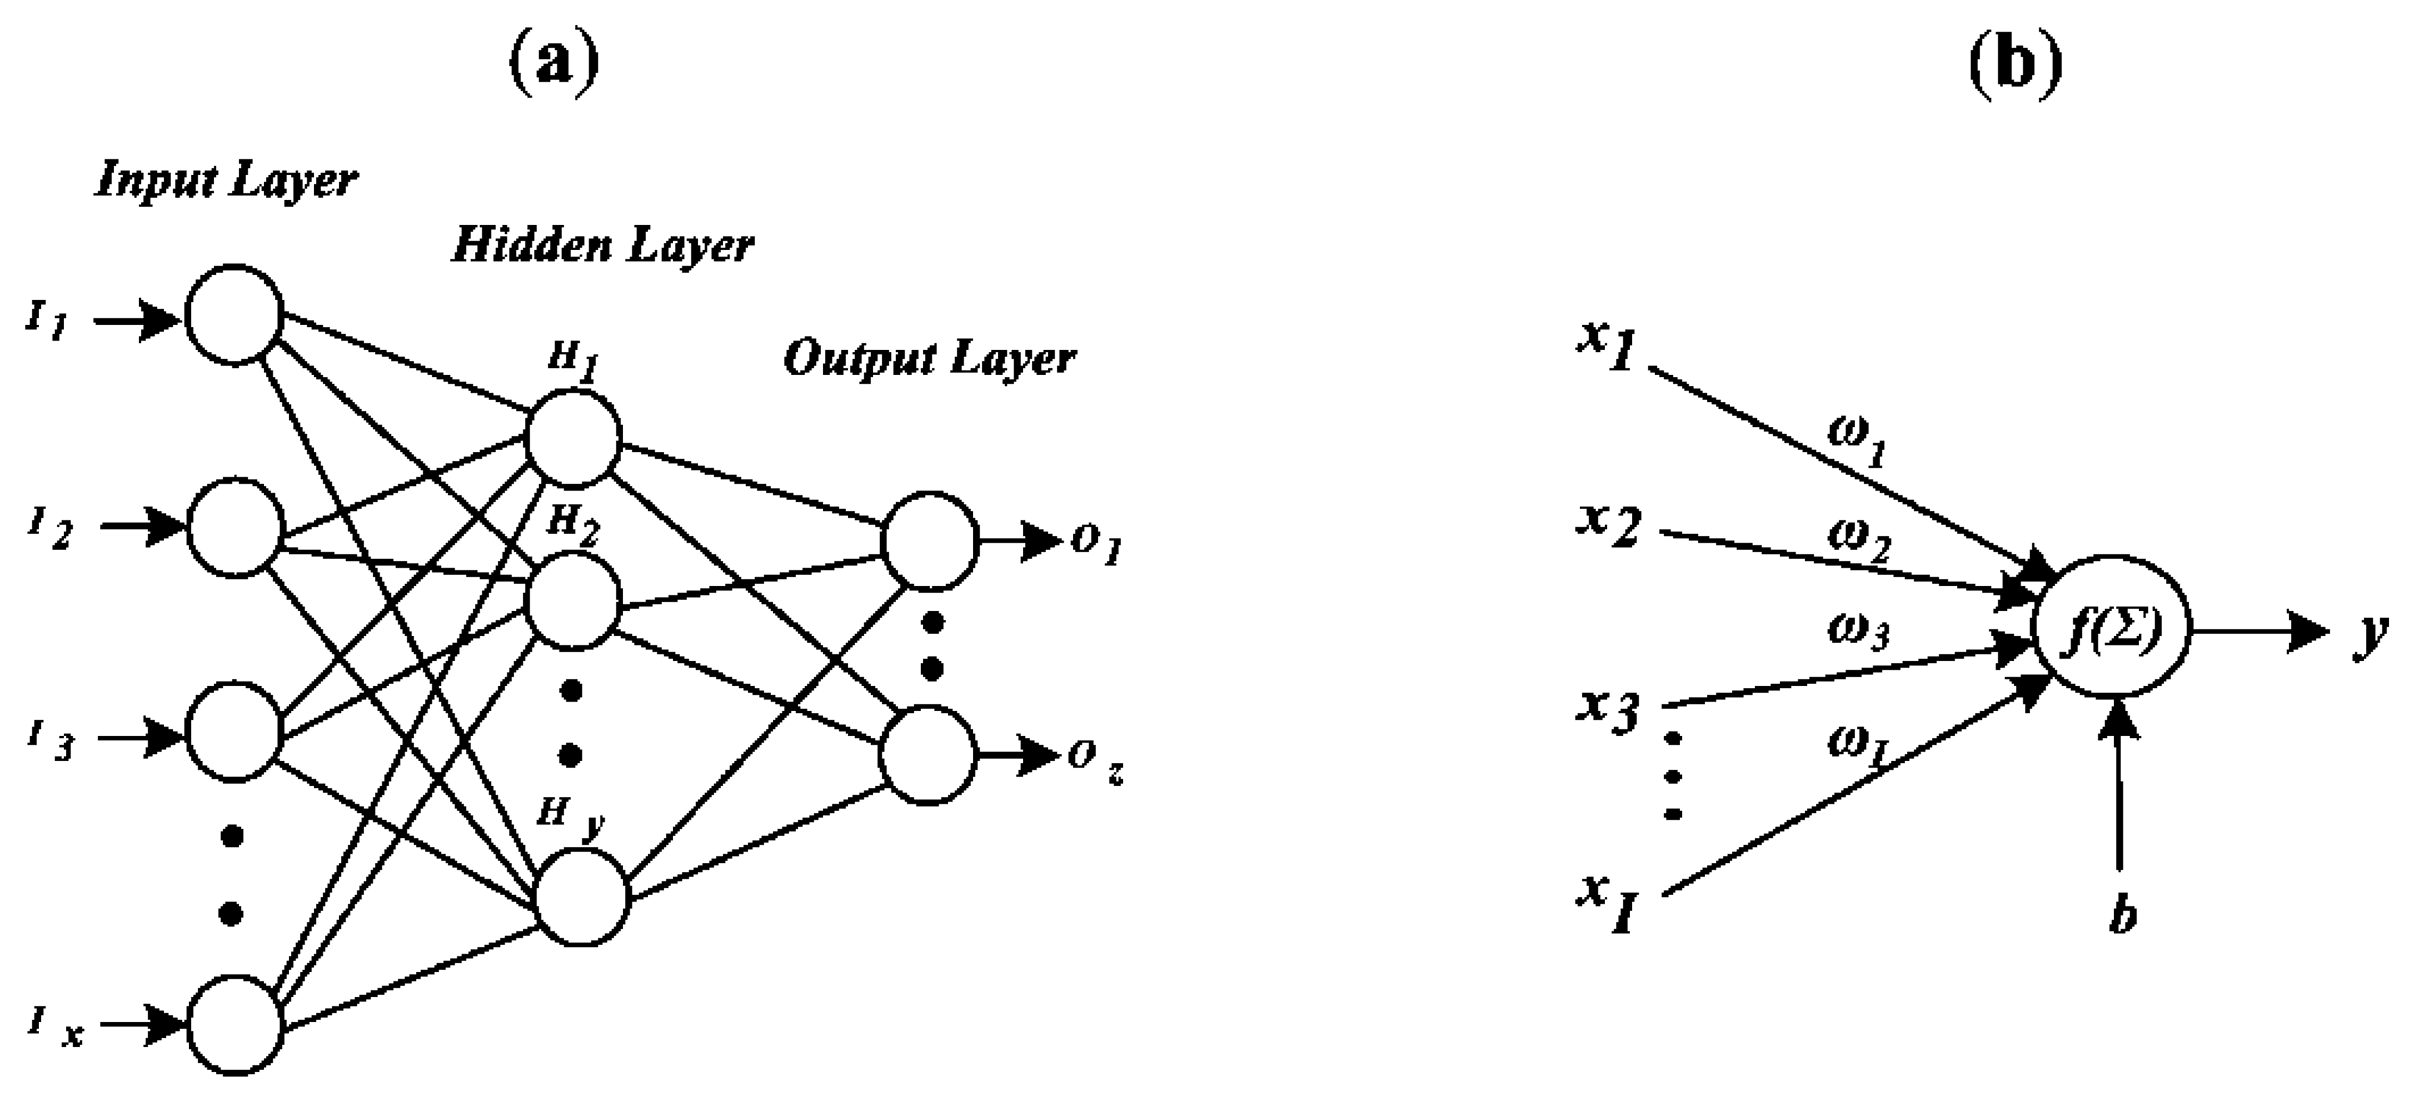 related with spartan 6 block diagram